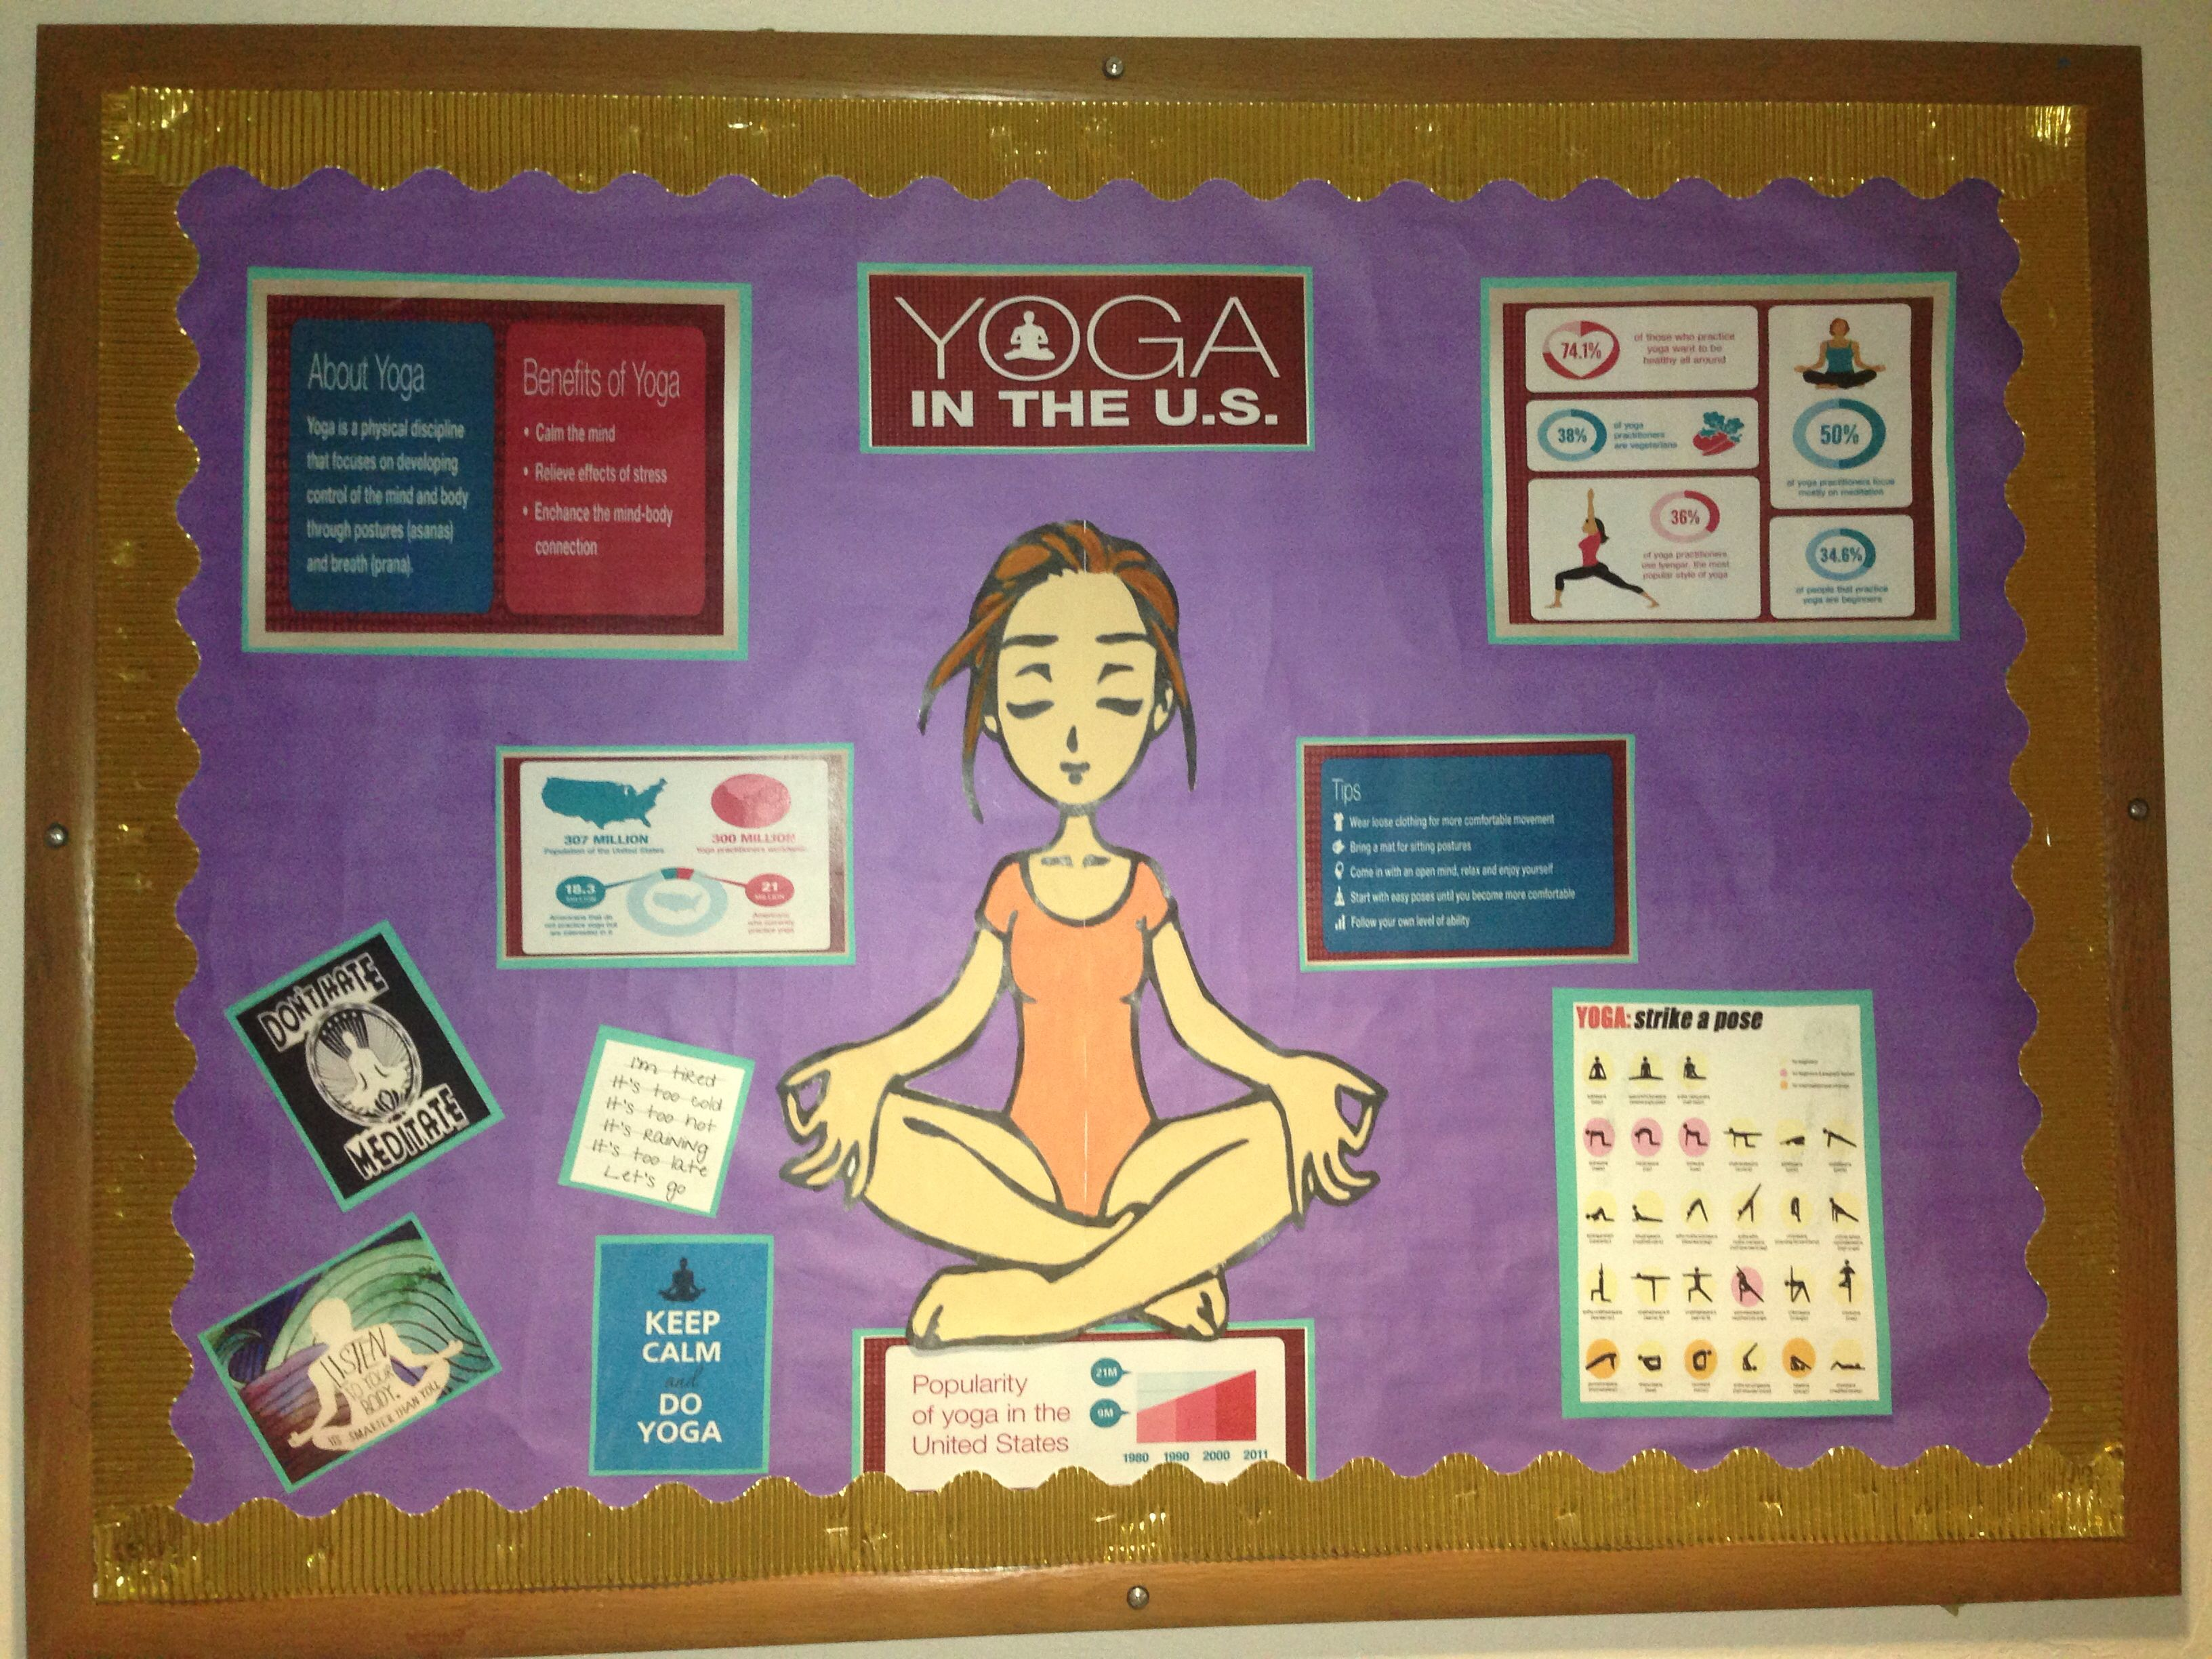 Yoga School Bulletin Board Shows different facts about the U. Perfect for  starting the year right and getting students involved with being fit.